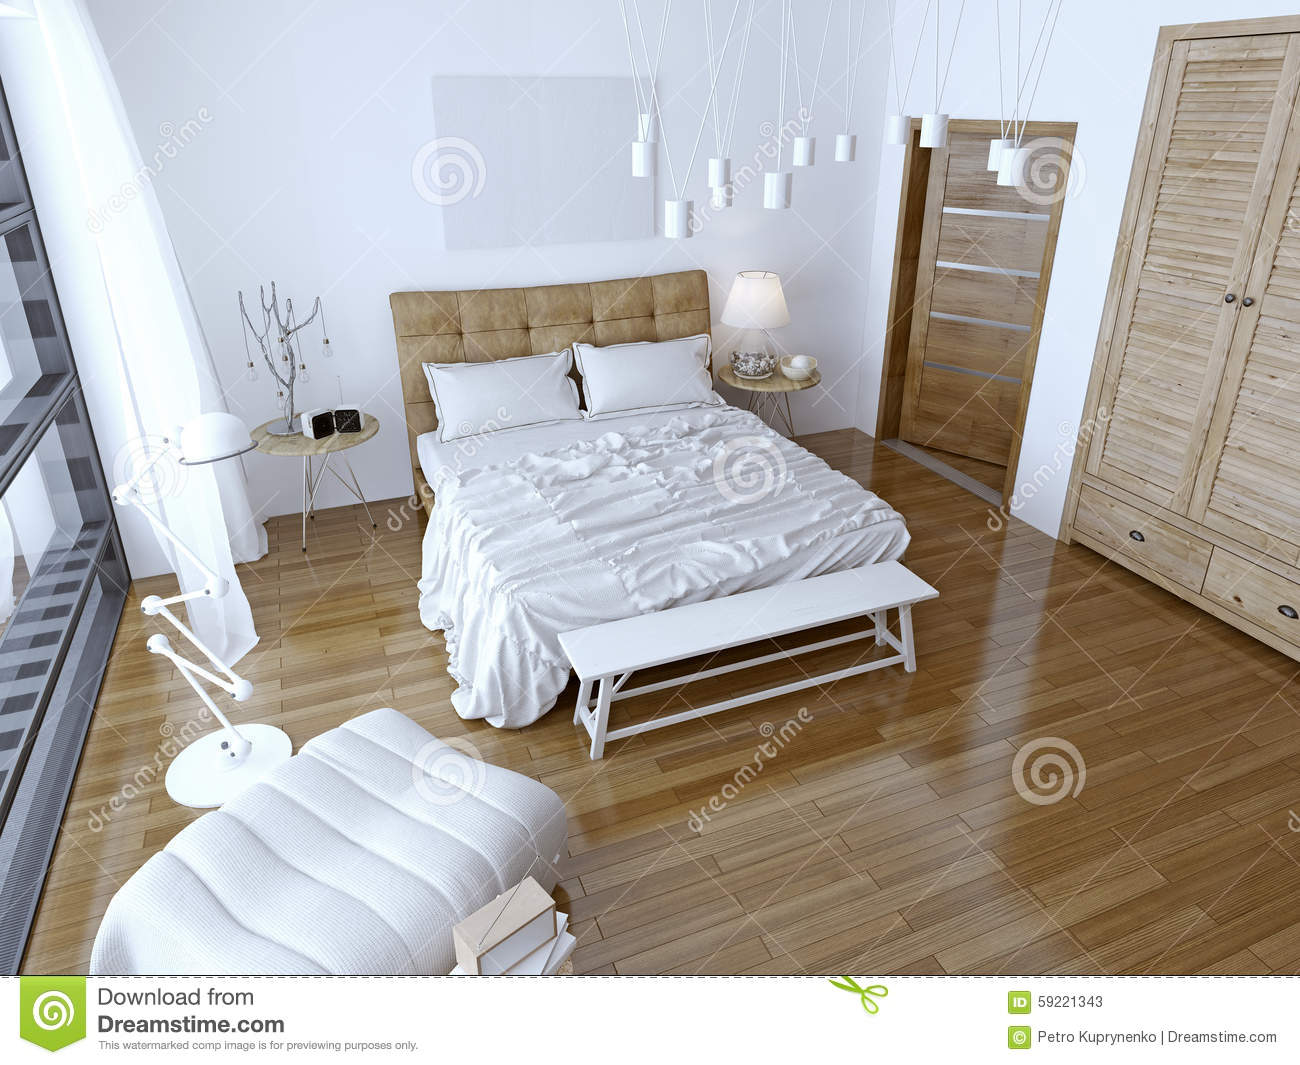 Cuisine moderne provencale for Lit chambre a coucher moderne